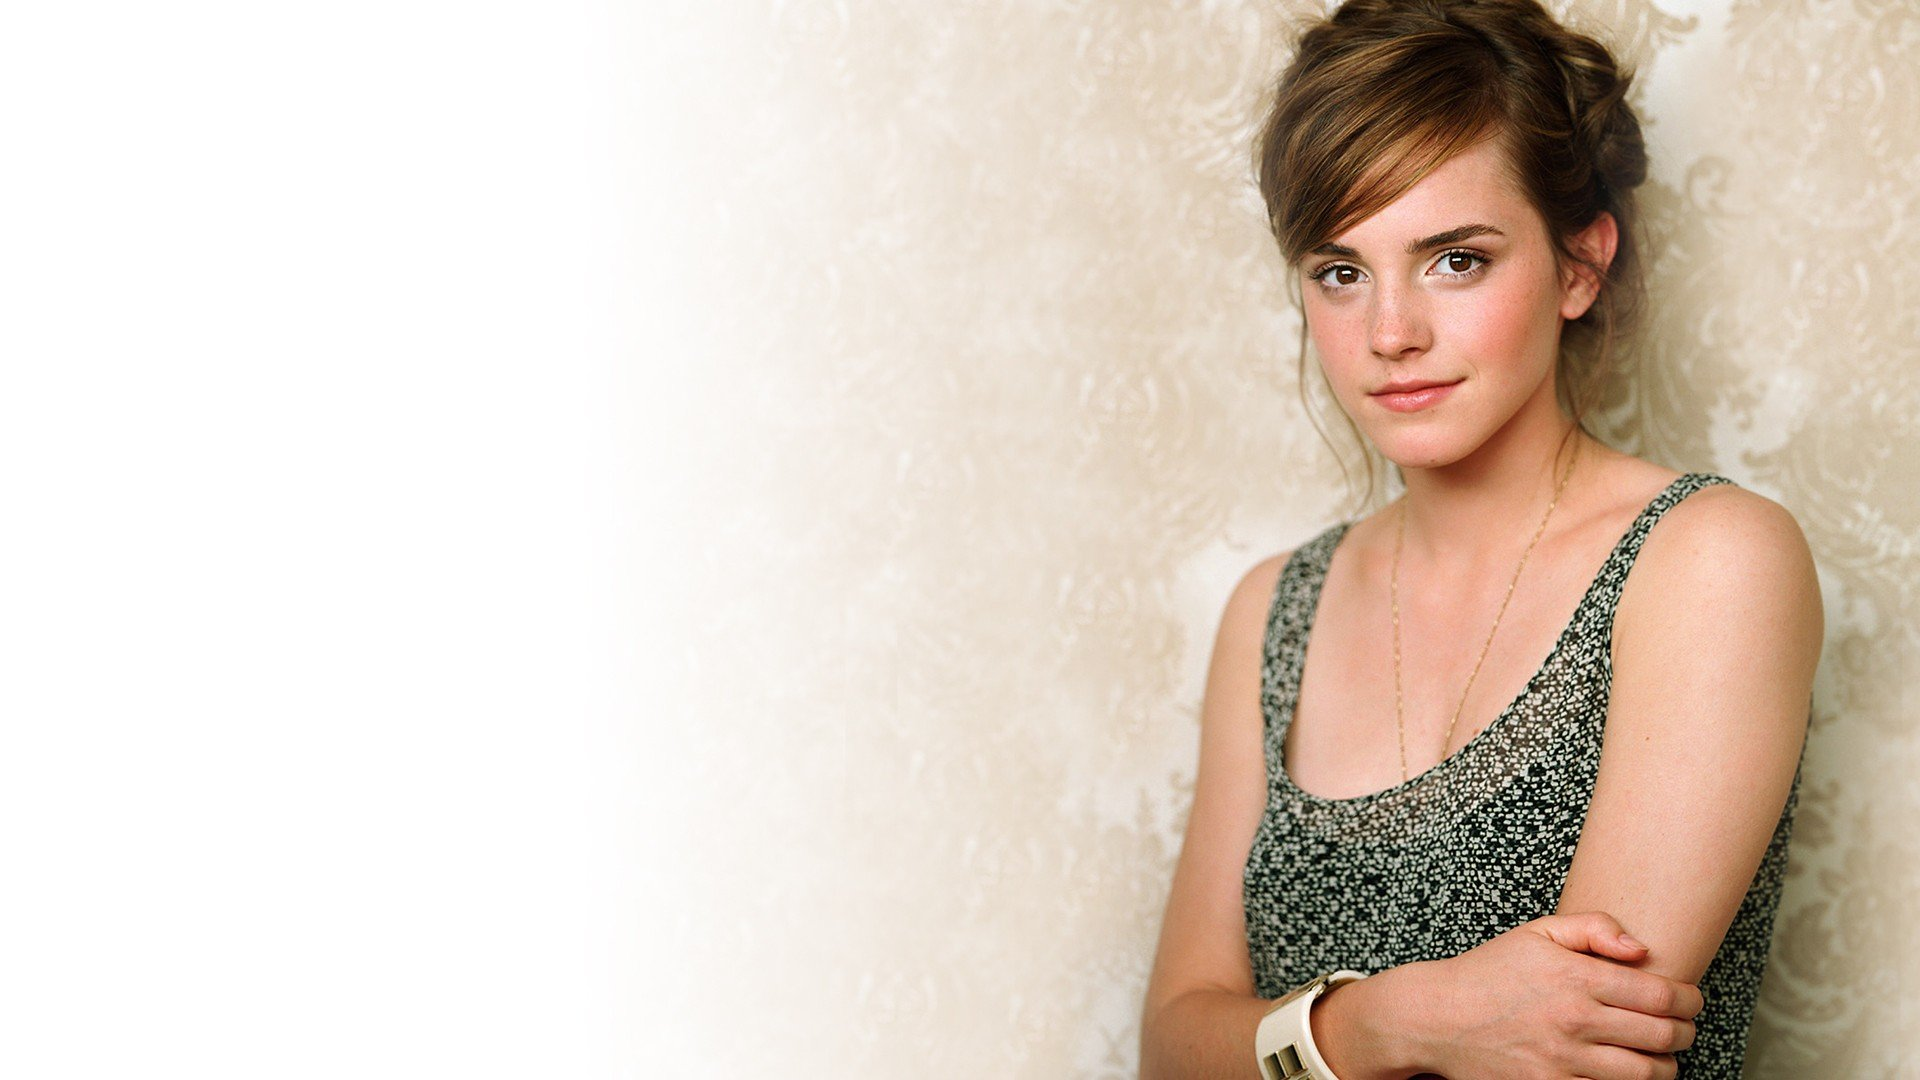 Actress Wallpaper For Mobile 26: Emma Watson, Actress HD Wallpapers / Desktop And Mobile